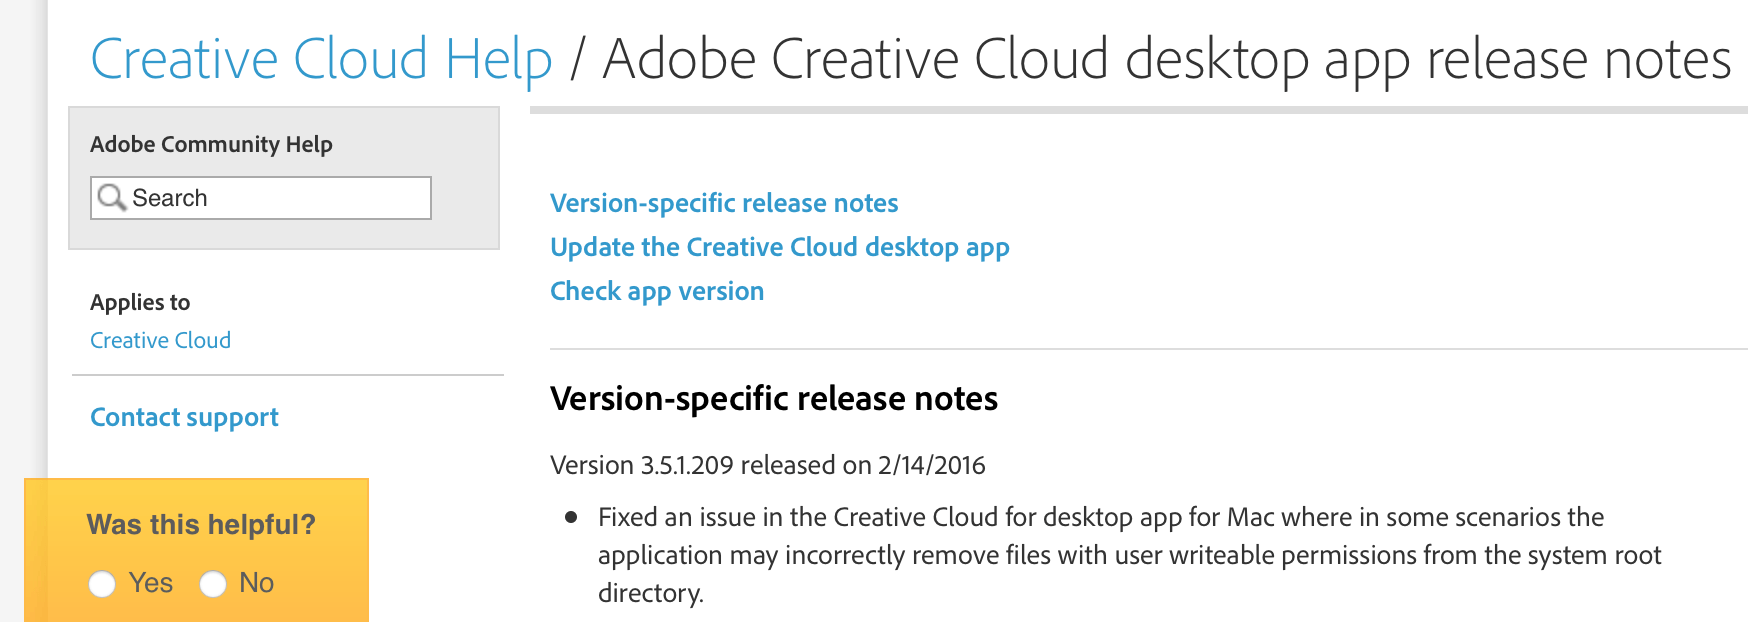 It's now safe to update Adobe Creative Cloud apps